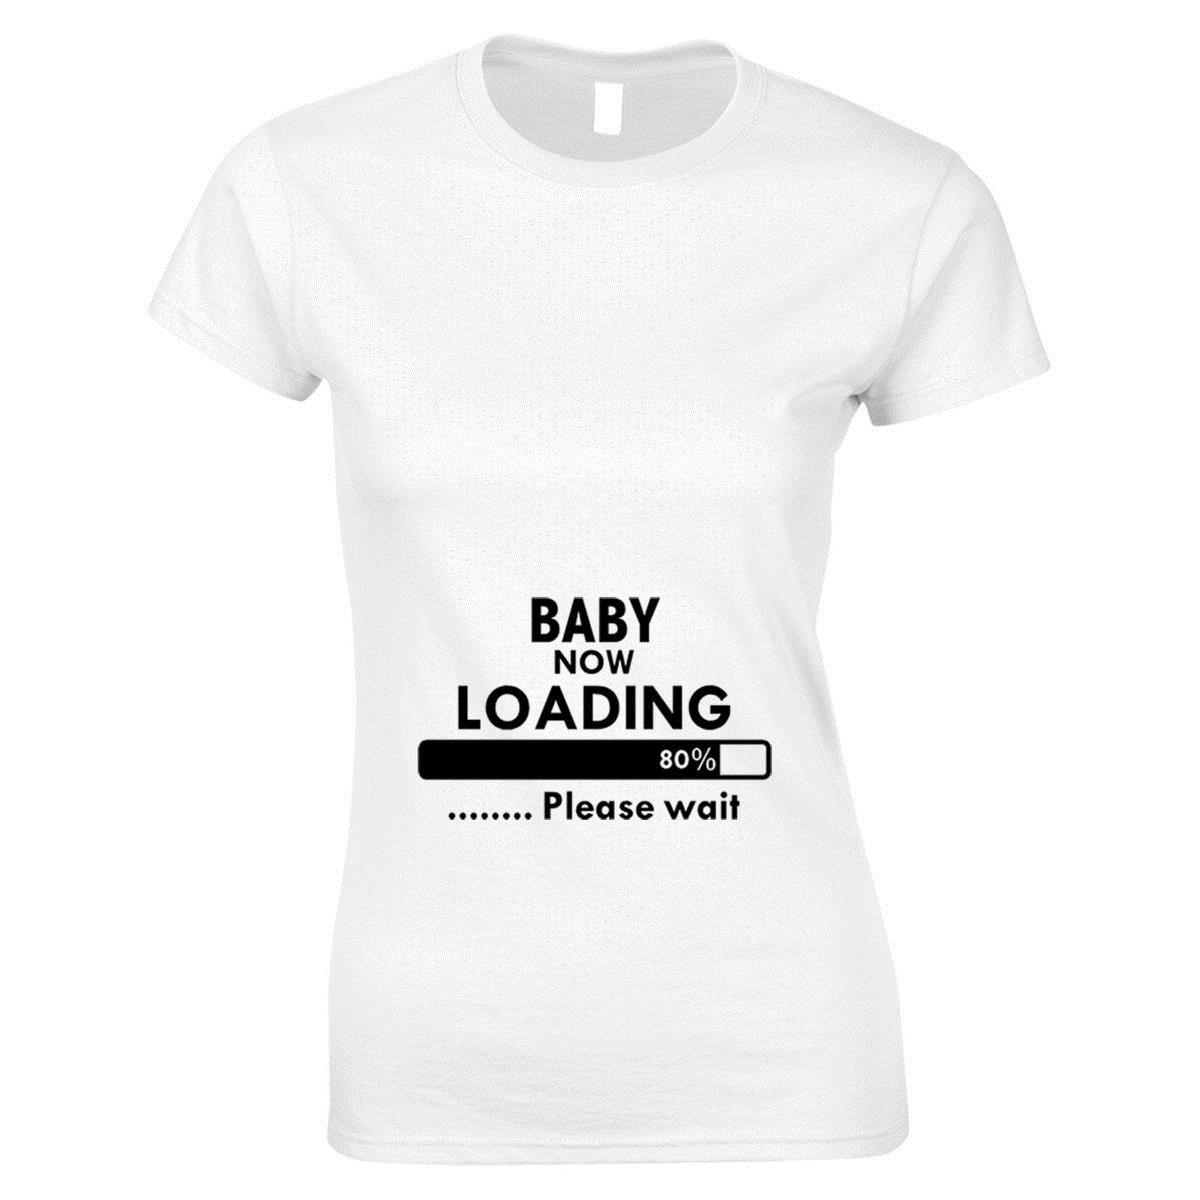 2cbceafb9fec0 Baby Now Loading Funny Maternity Pregnancy Top Womans T Shirt Baby Shower  Gift Summer Casual Man Good Quality T Shirt And Shirt Shop T Shirts Online  From ...